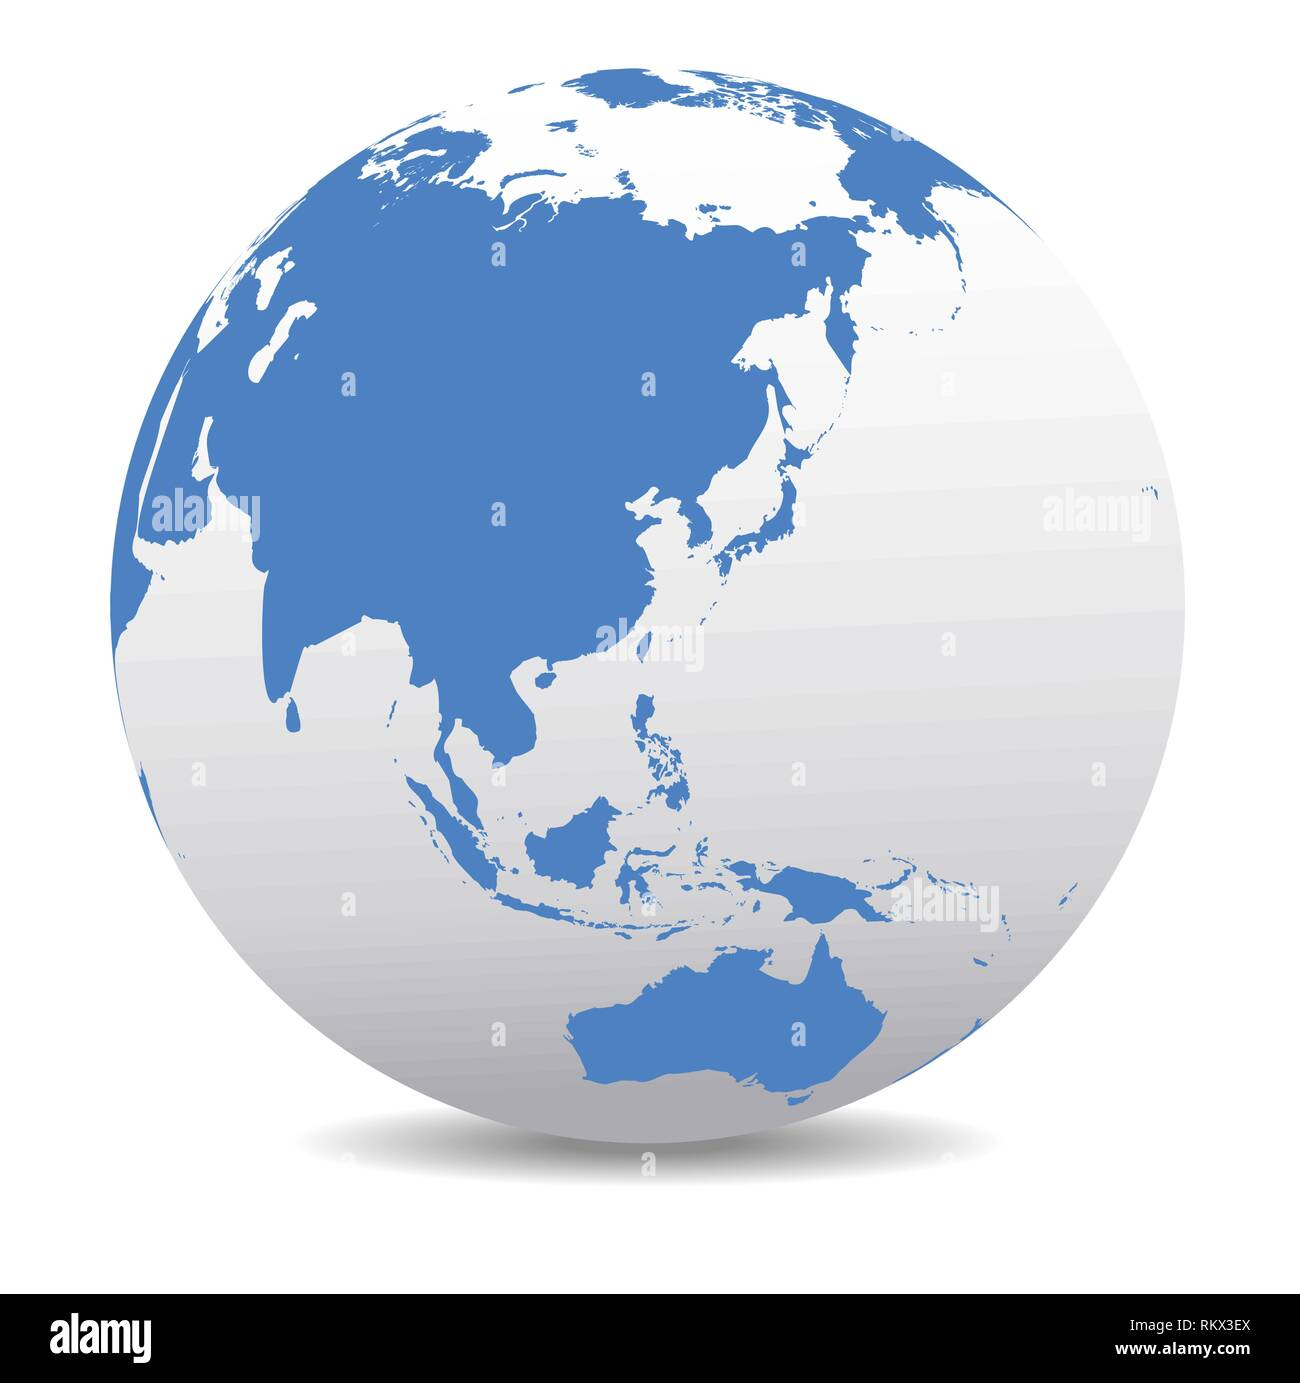 China, Japan, Malaysia, Thailand, Indonesia, Global World, Vector Map Icon of the World Globe - Stock Vector